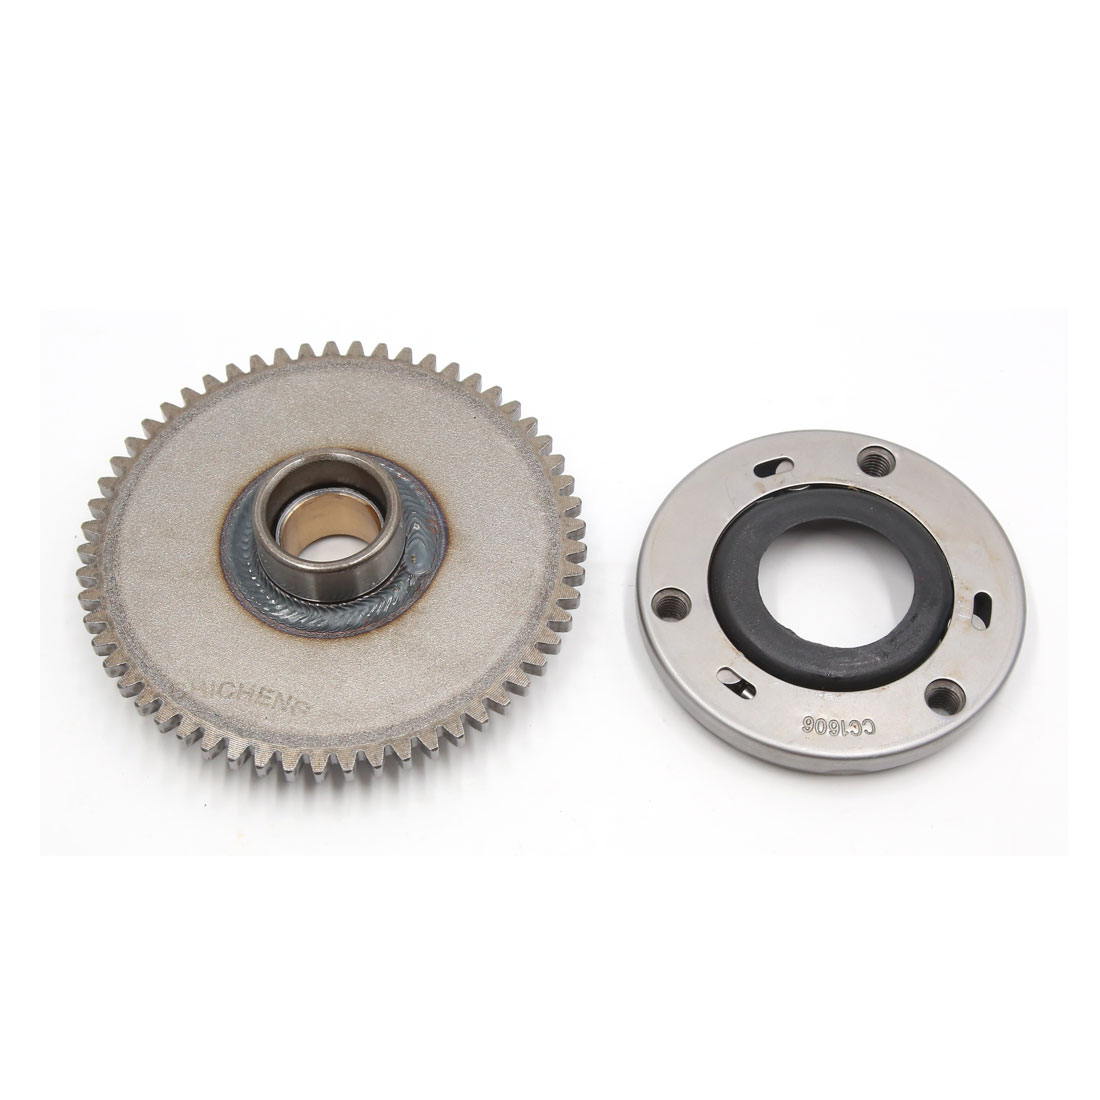 Metal Motorcycle One Way Bearing Starter Clutch Gear Kit for ZJ125